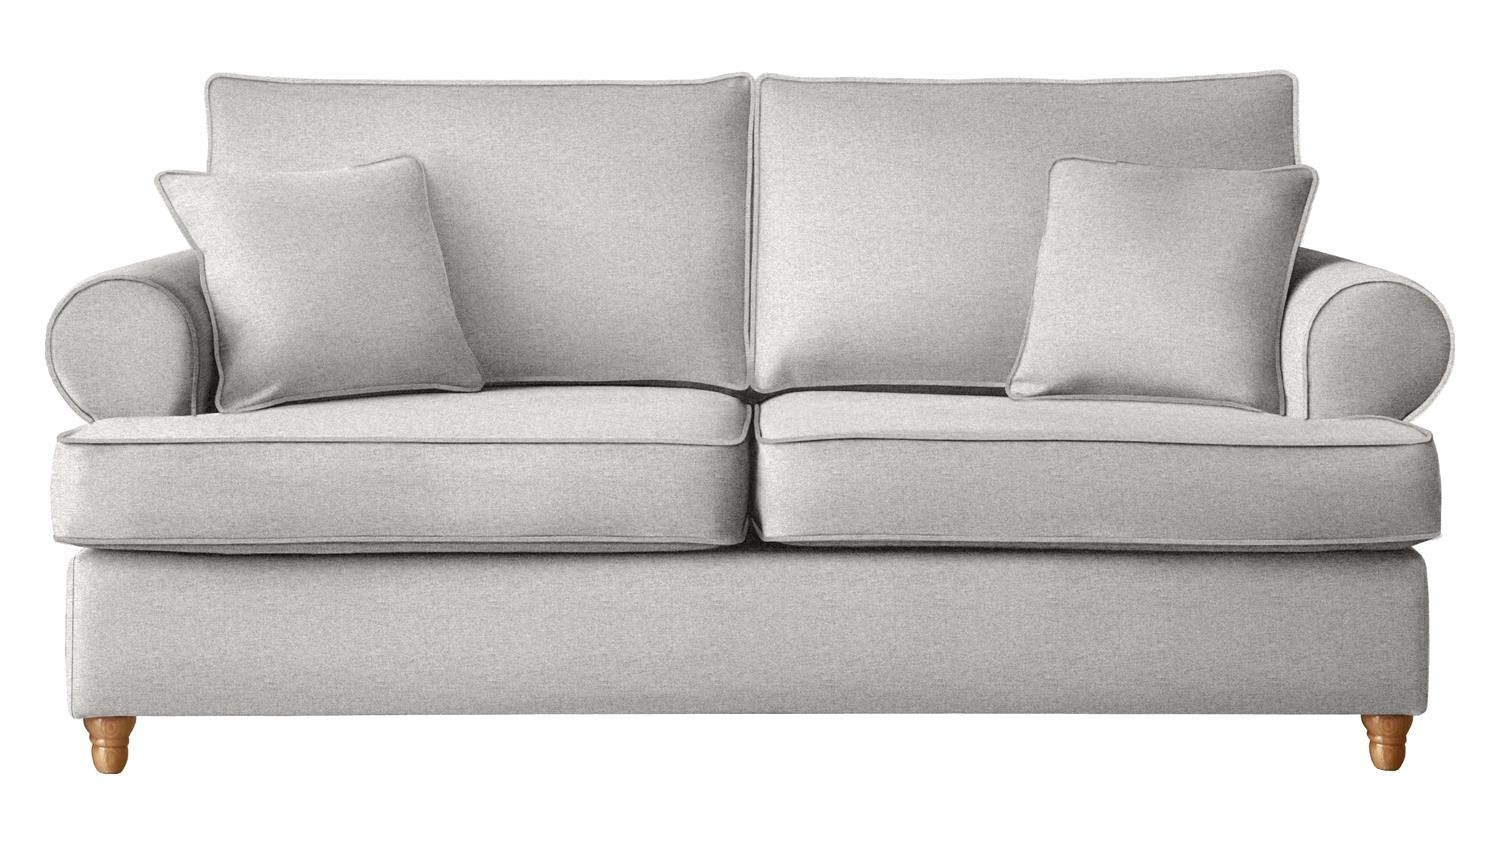 The Buttermere 2 Seater Sofa